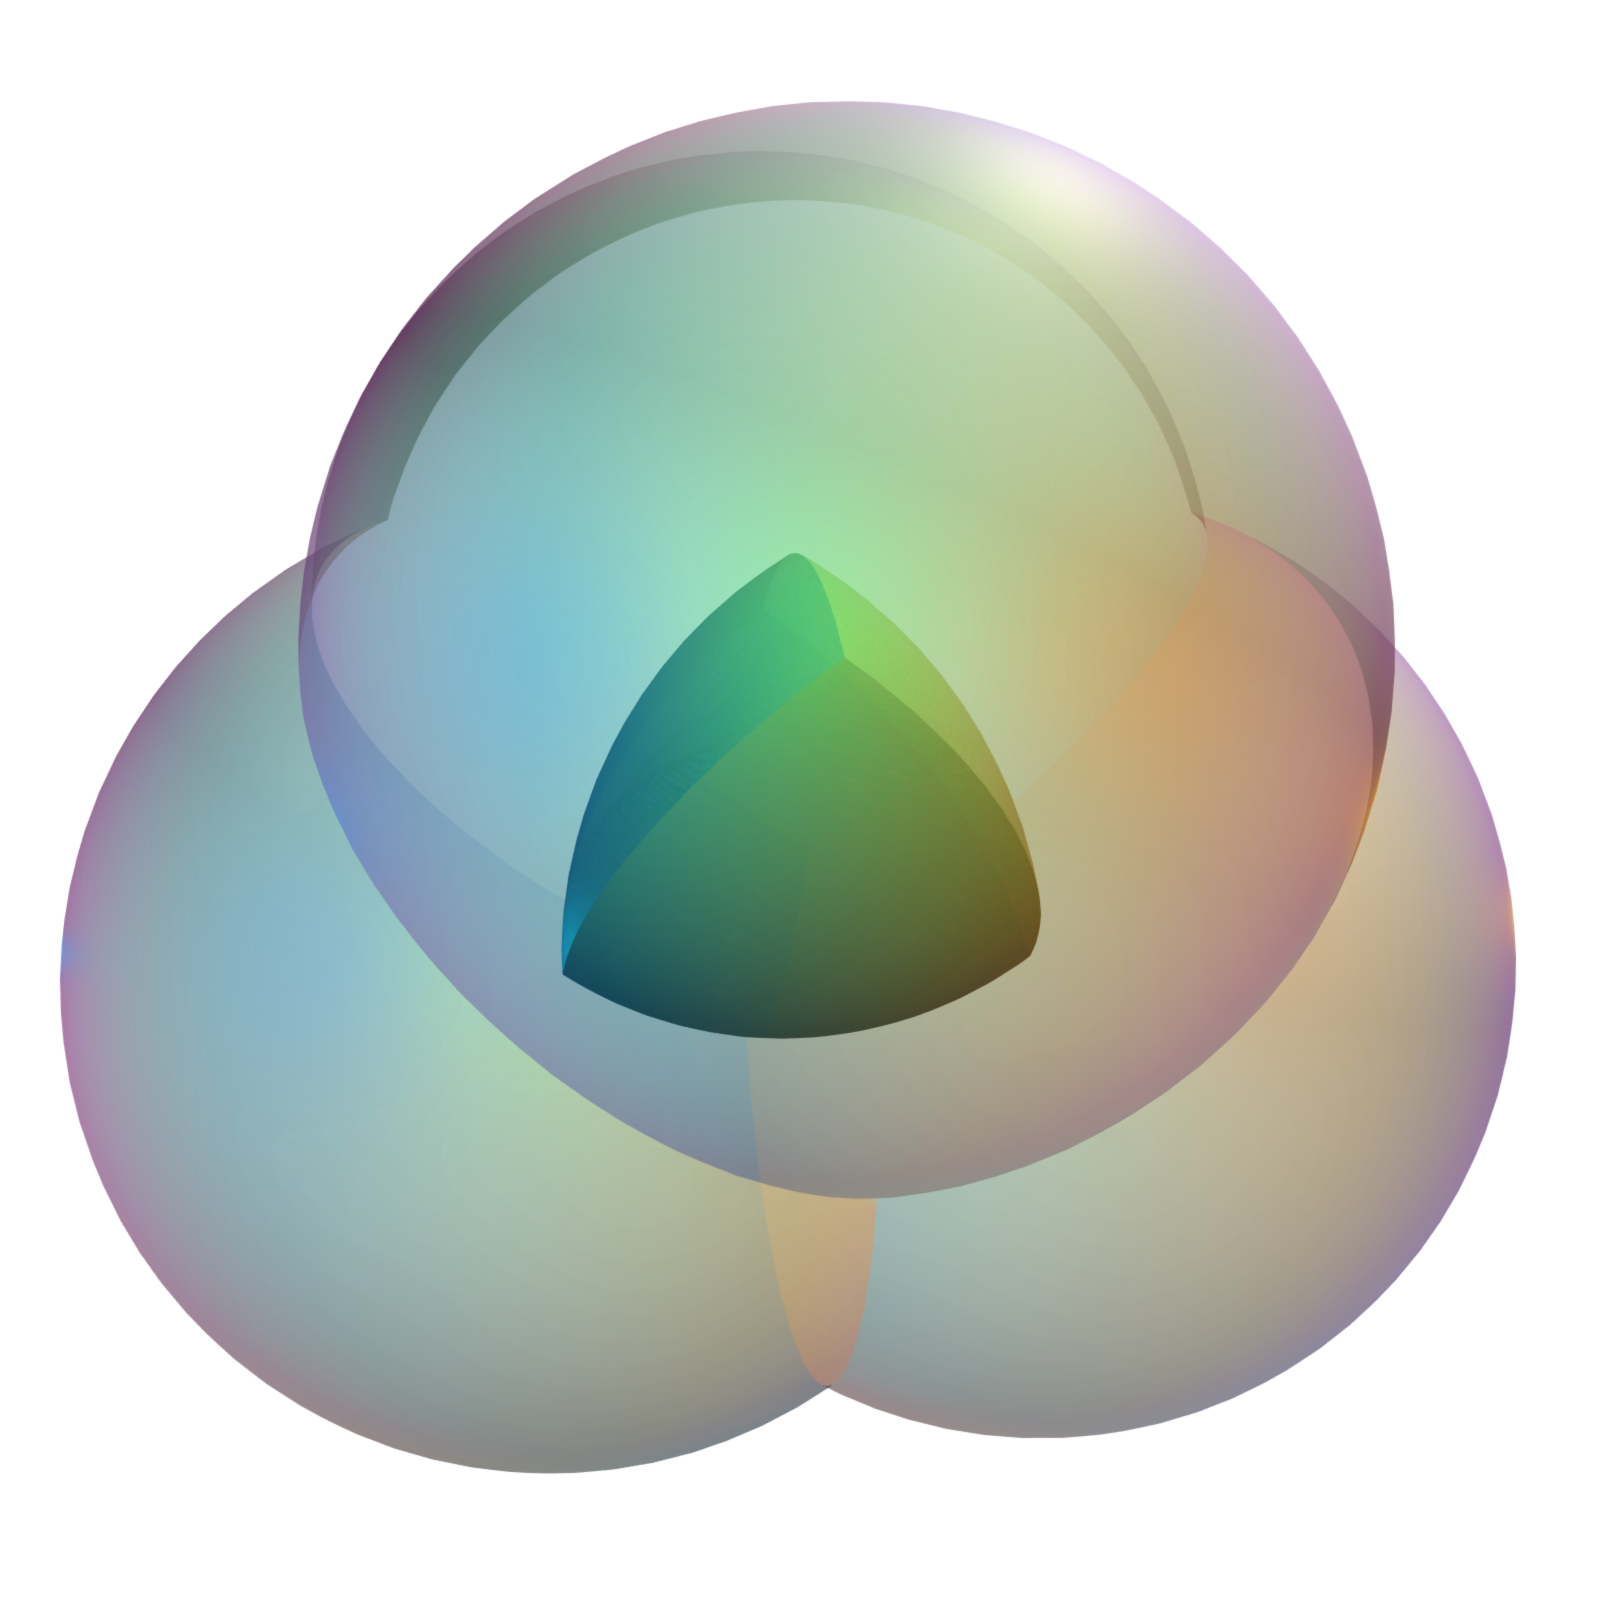 Sphere clipart different shape Each radius triangle of Reuleaux